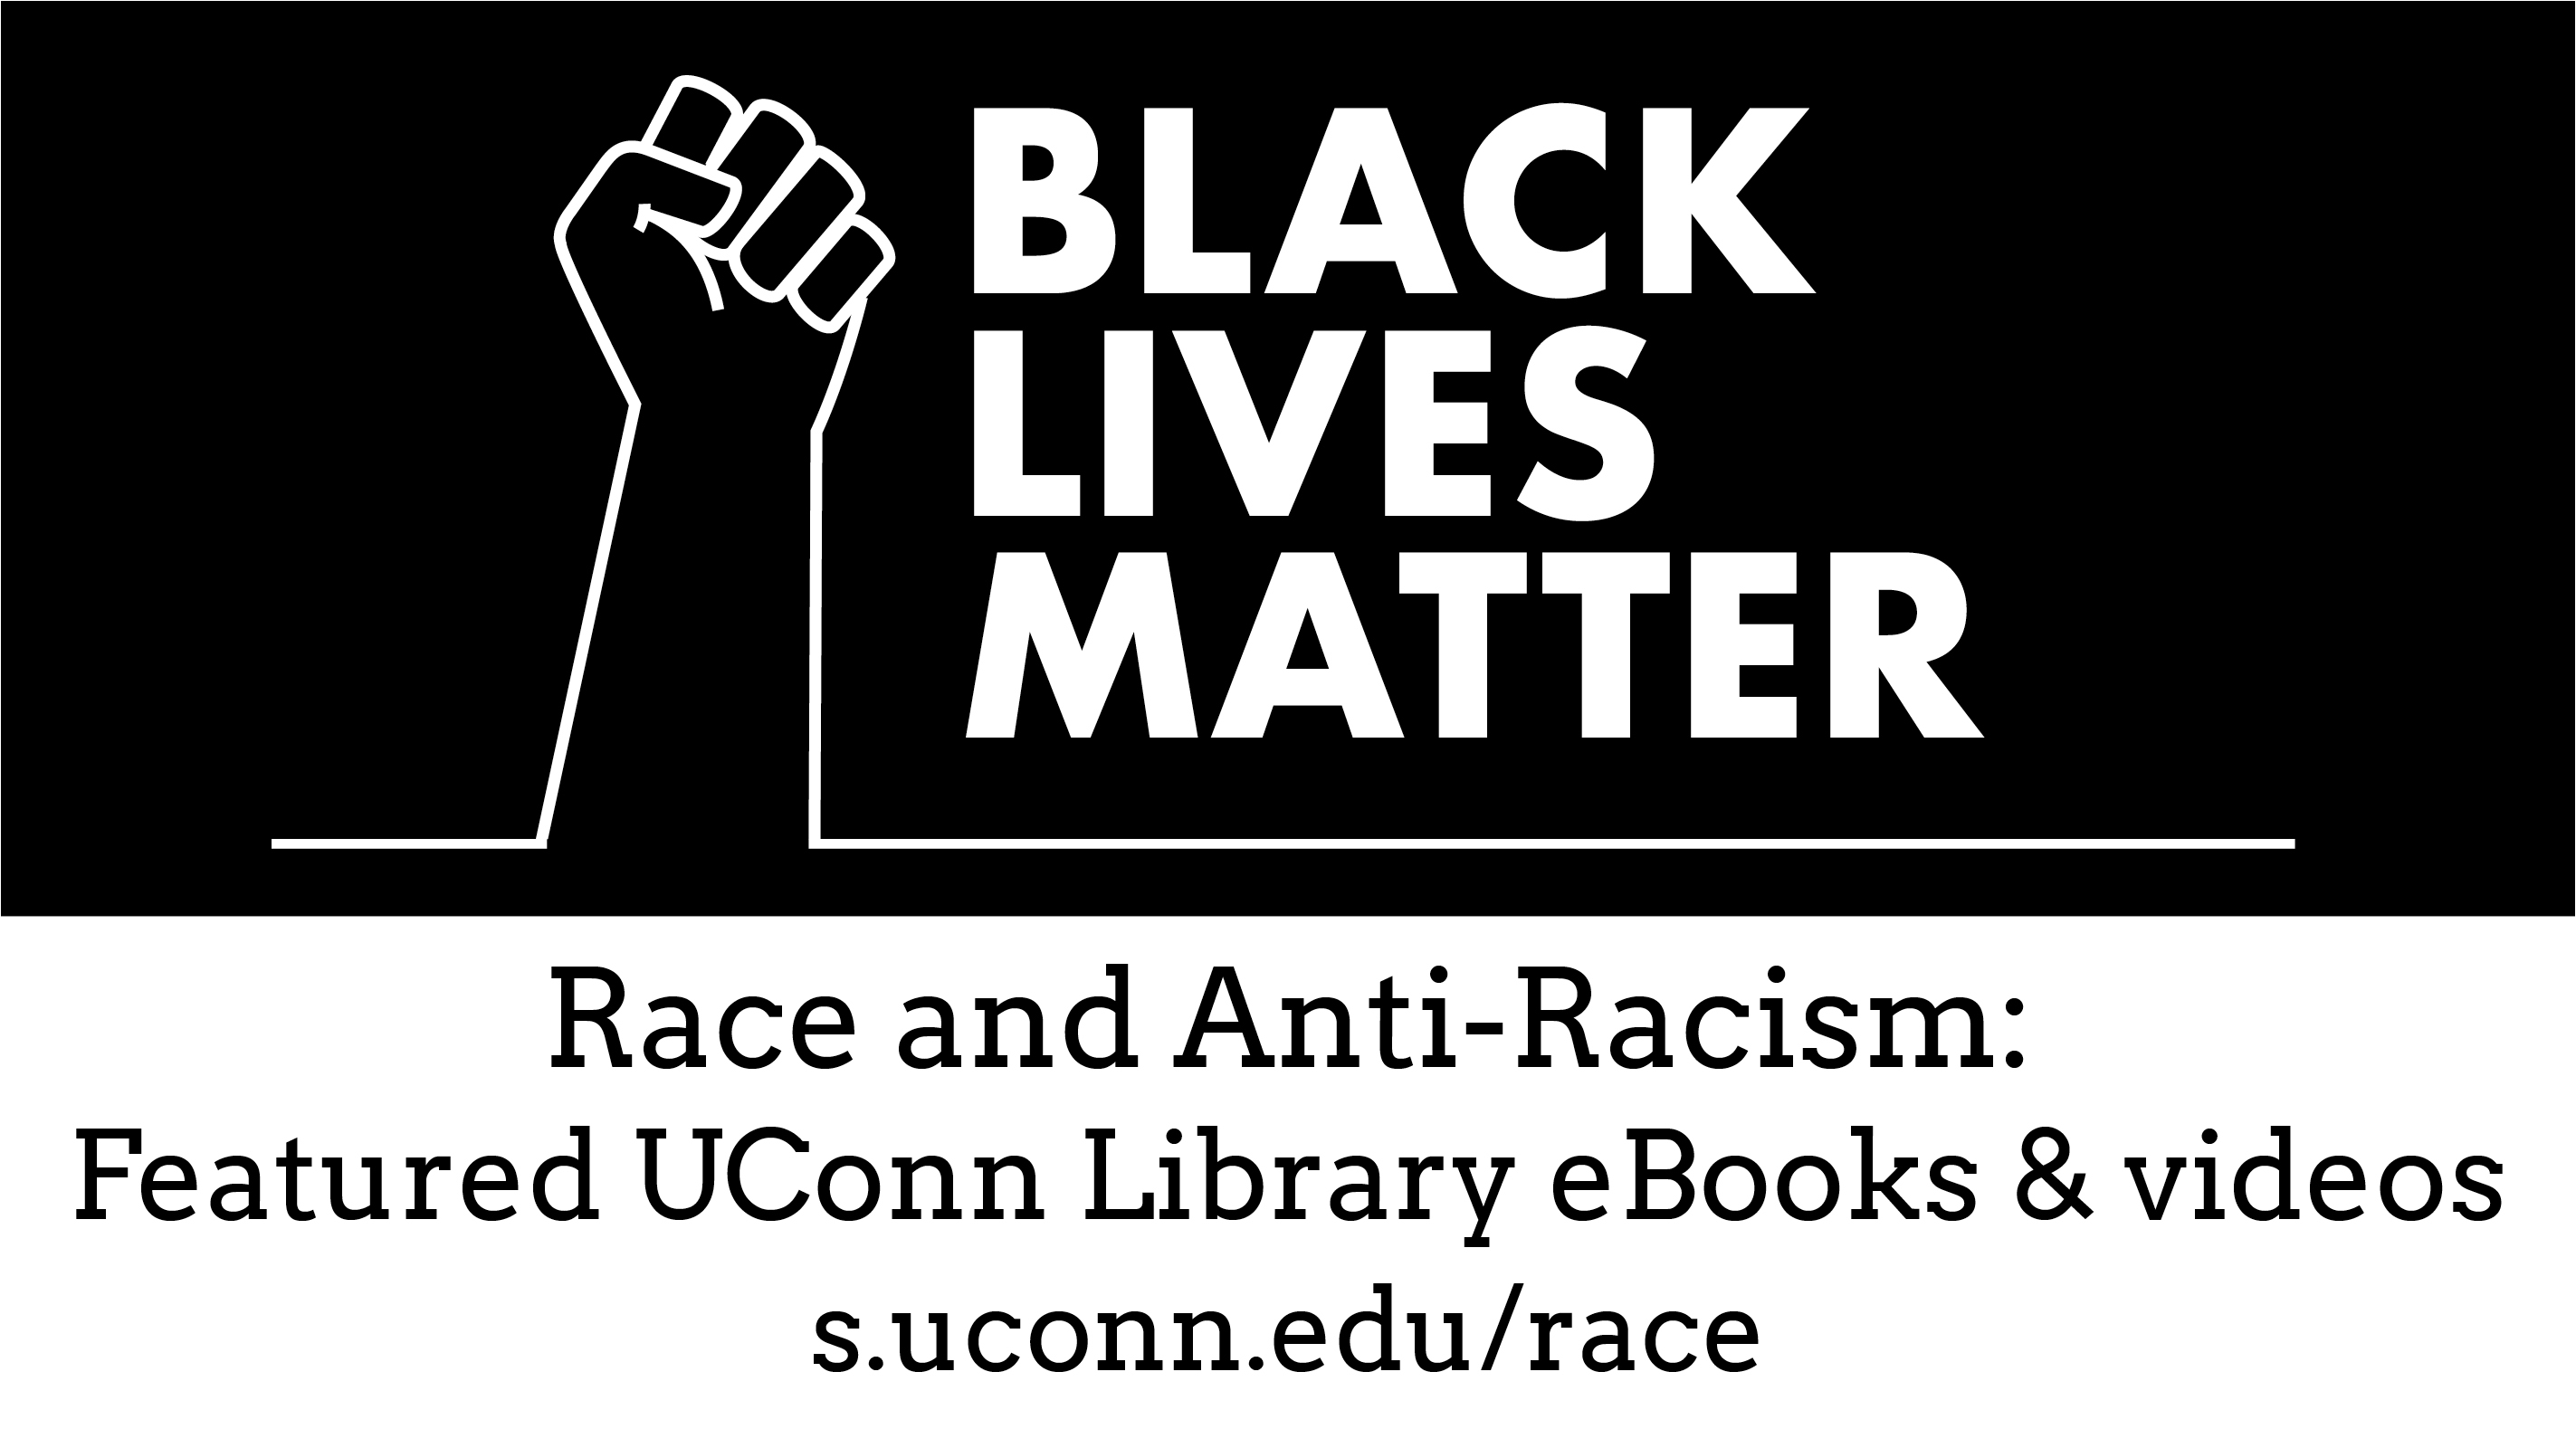 Race and Anti-Racism: Featured UConn Library eBooks & Videos